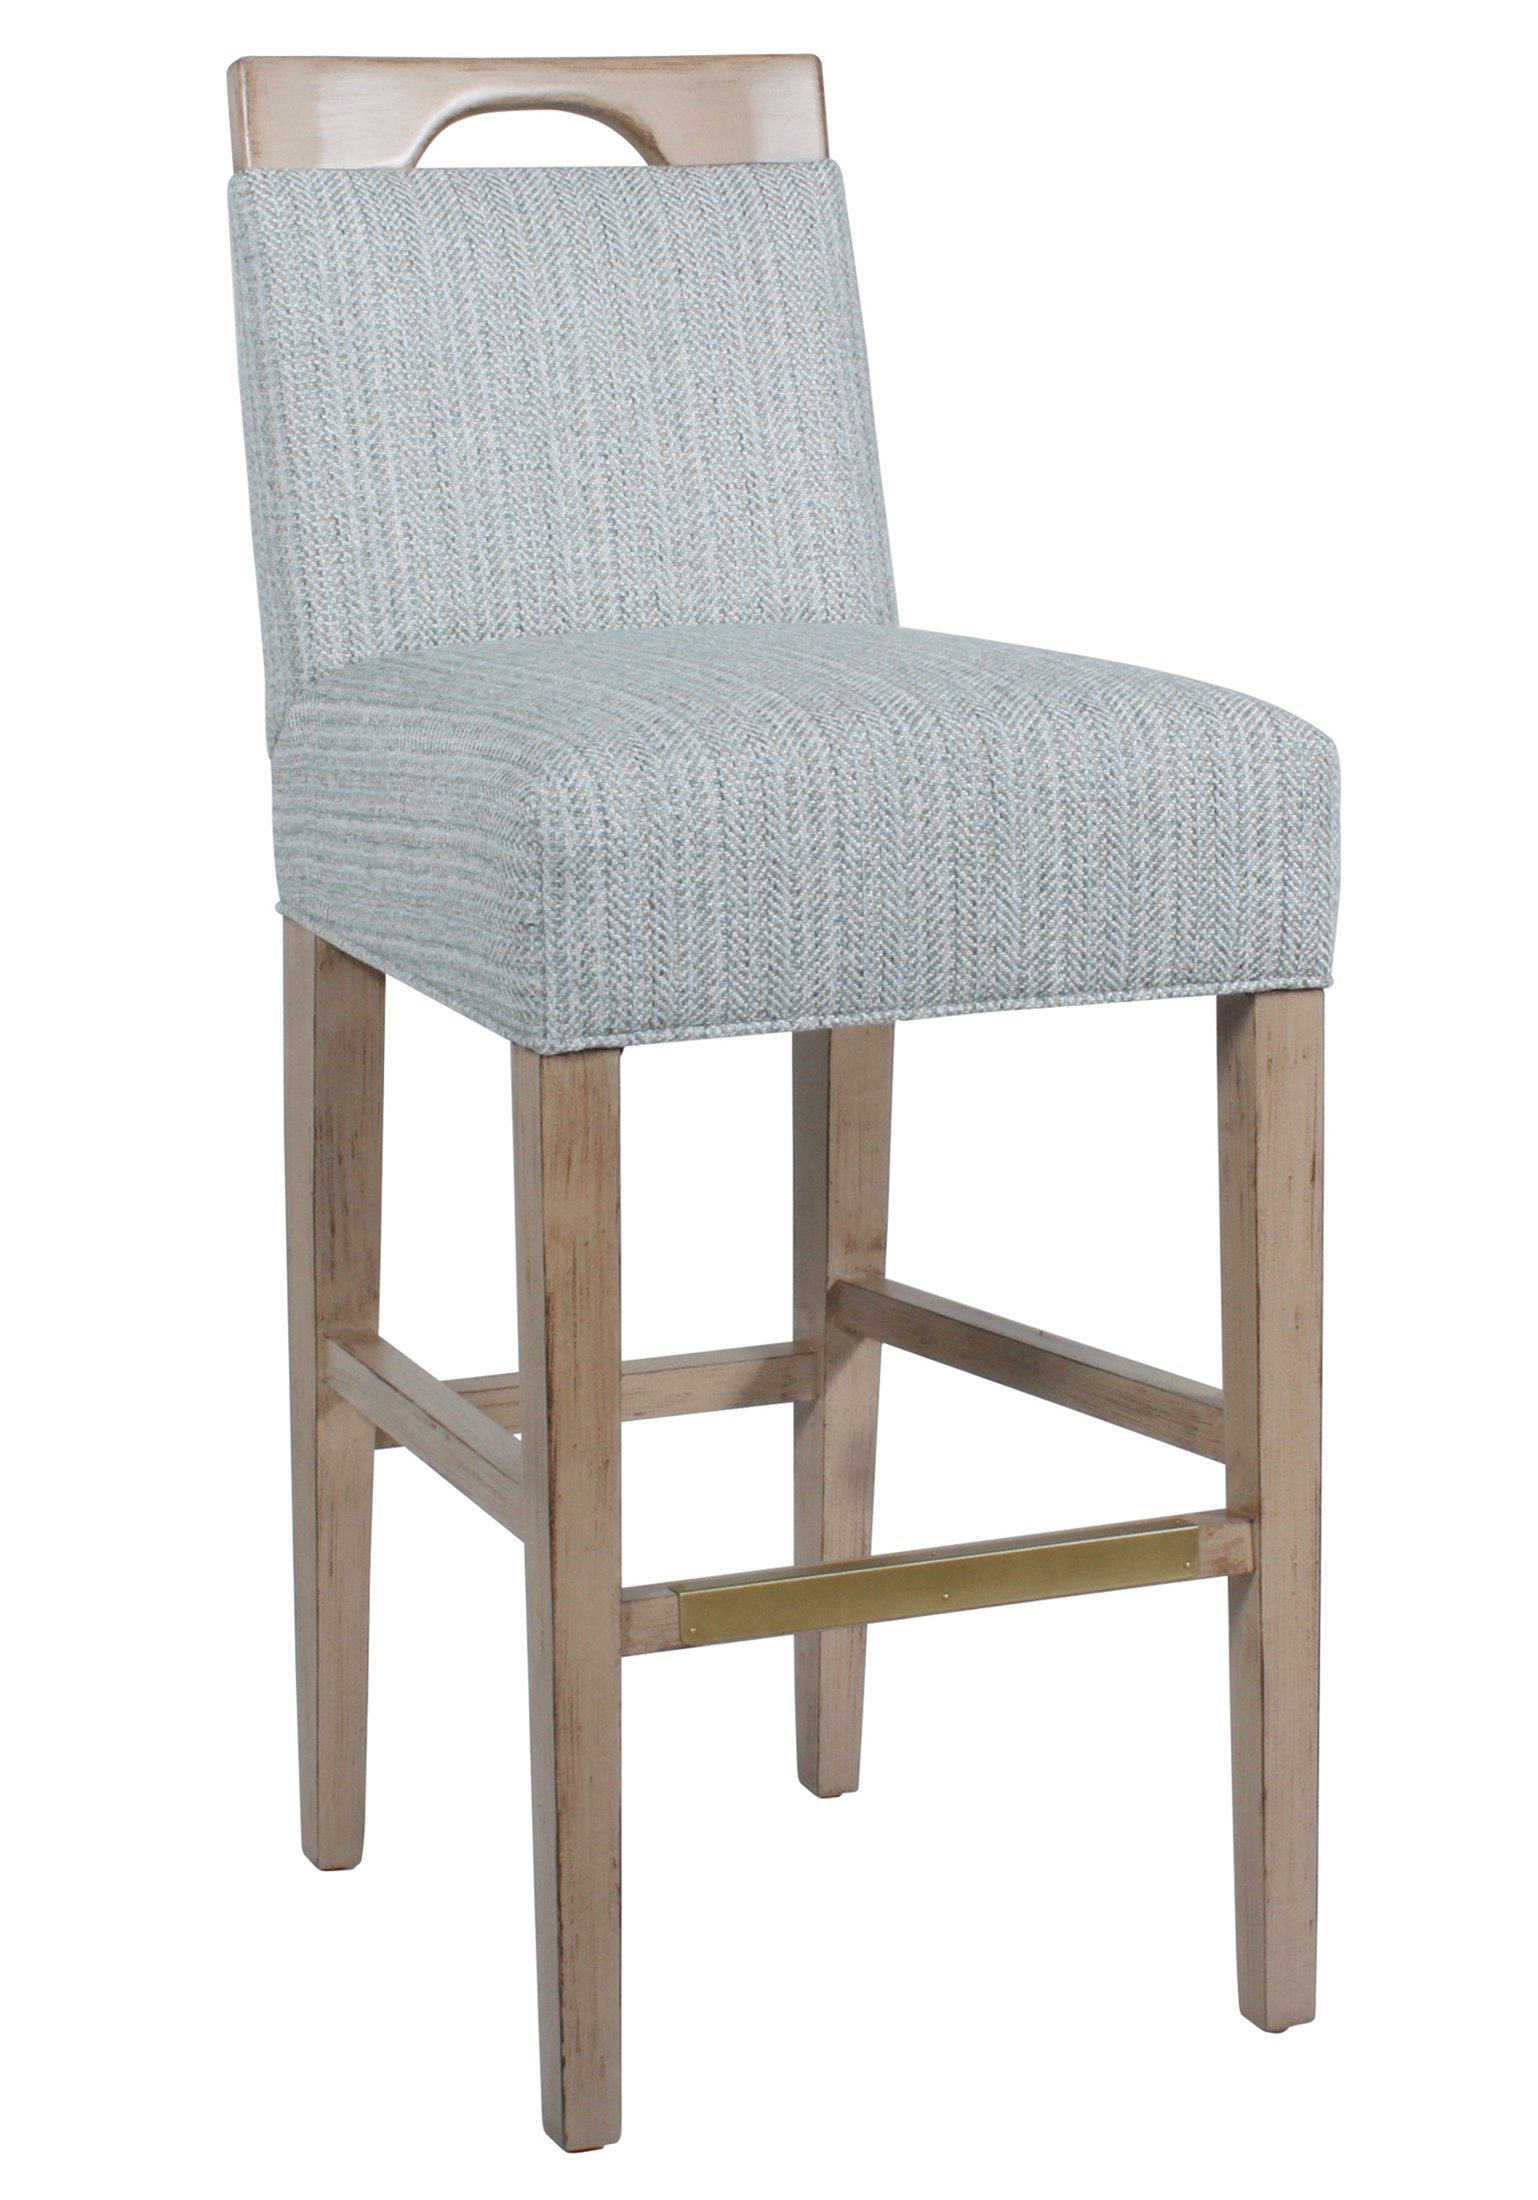 Amazing 632 Bar Stool 632C Counter Height New April 2019 Cox Alphanode Cool Chair Designs And Ideas Alphanodeonline